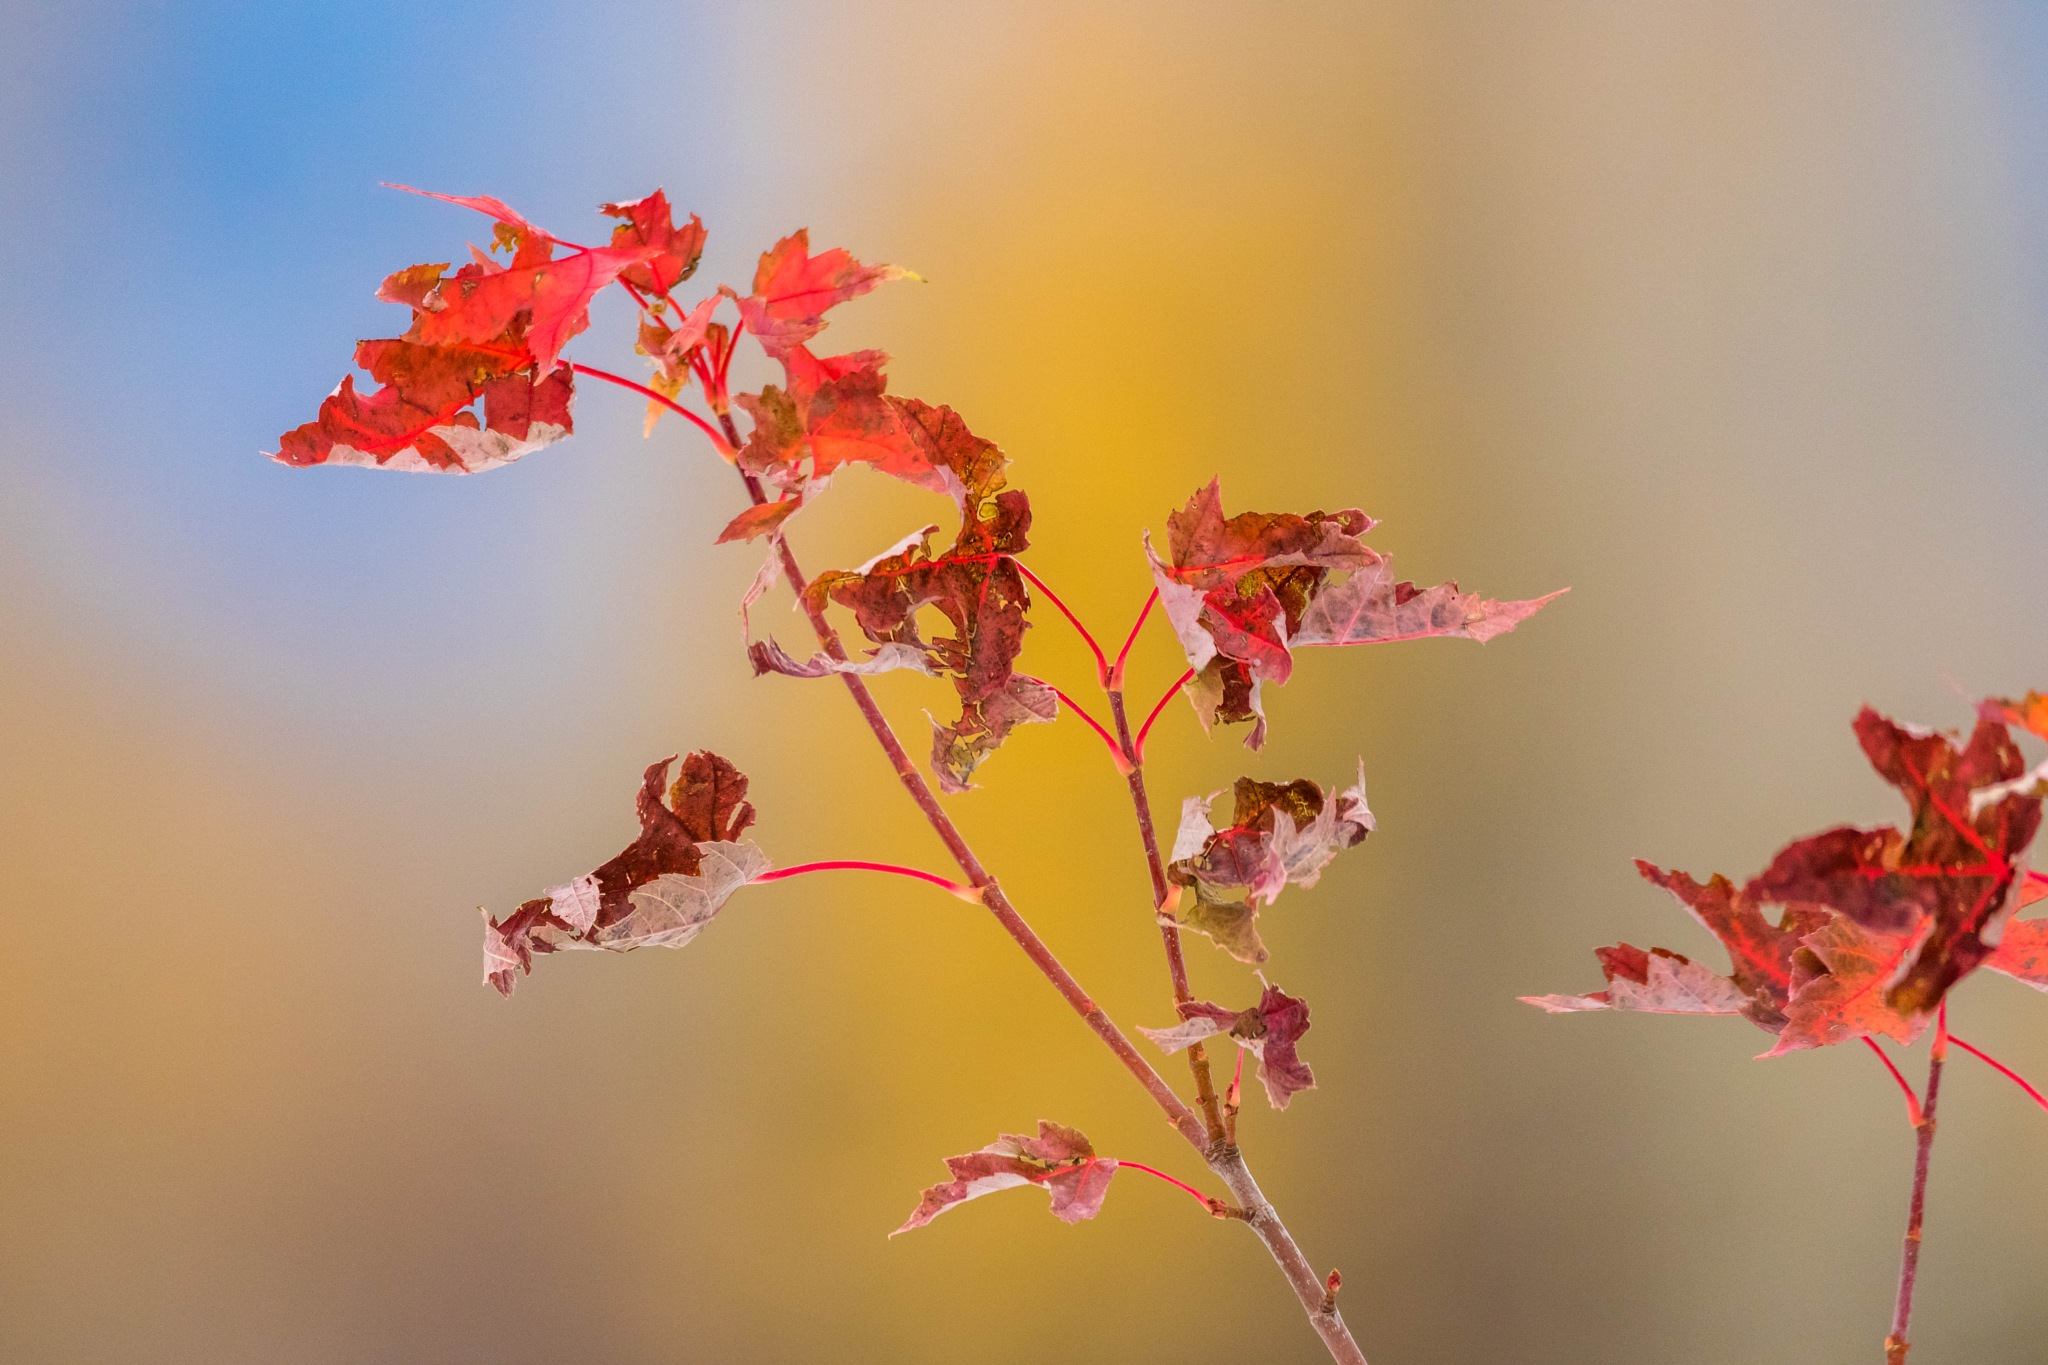 Crinkly Maple Leaves by drchad480